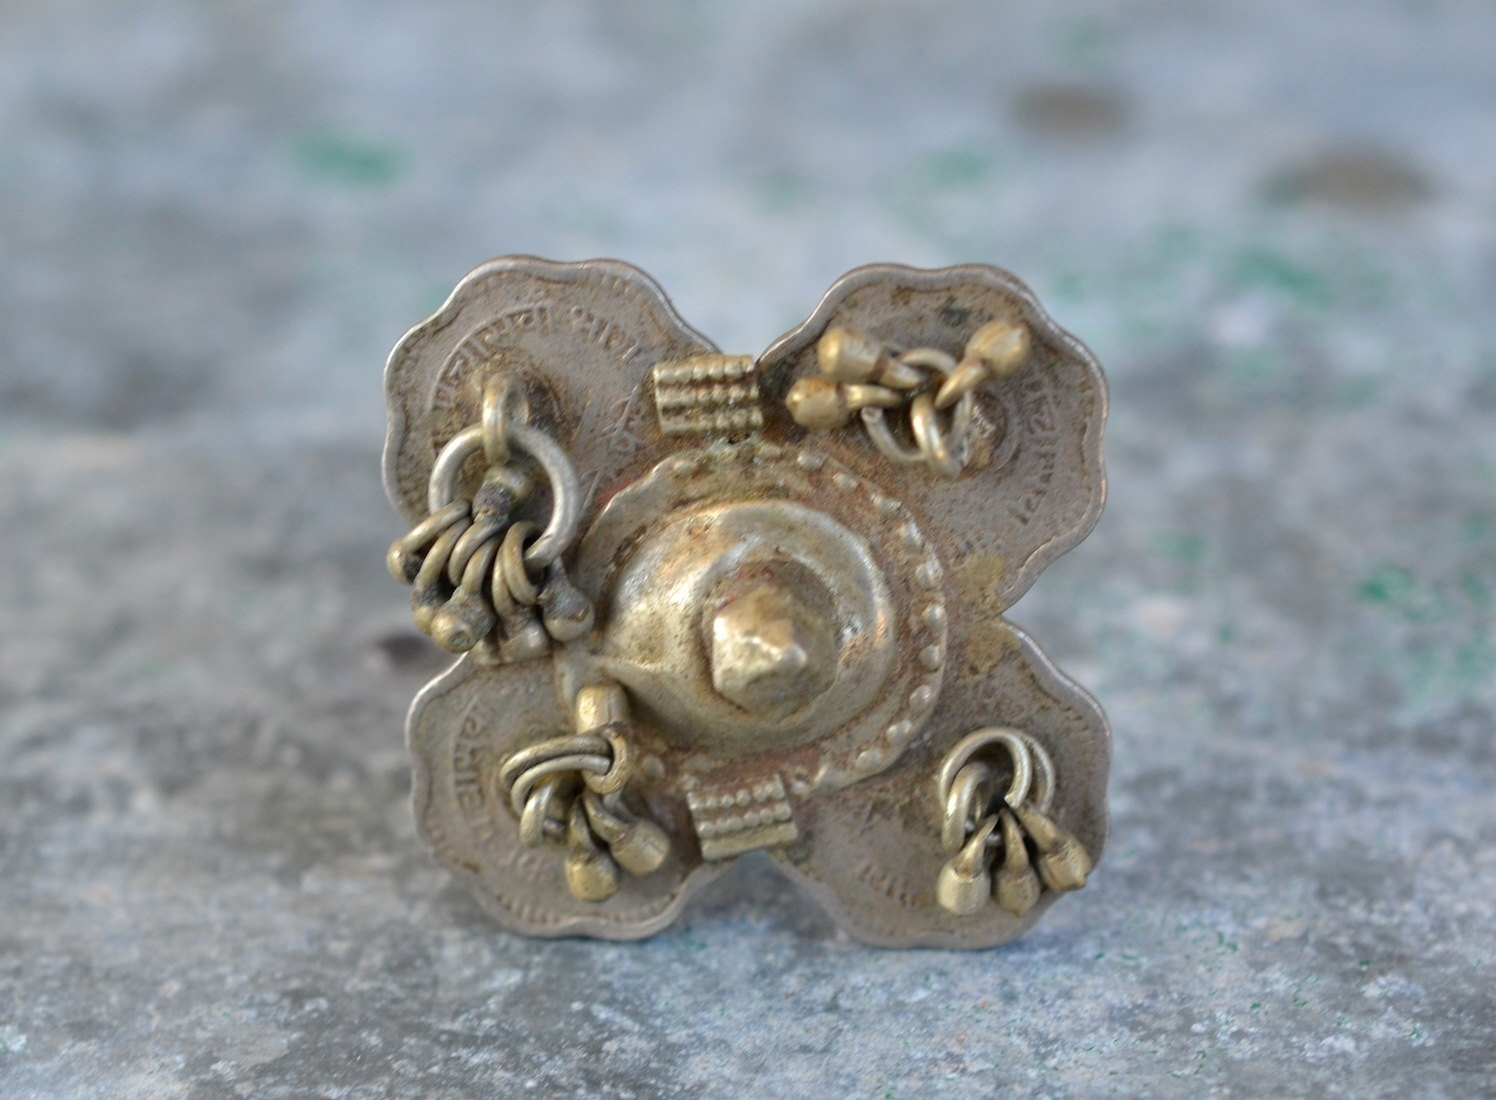 Banjara Gypsy Ring Coin Silver Indian Tribal Bells With Spike And Throughout Newest Toe Rings With Bells (View 5 of 15)